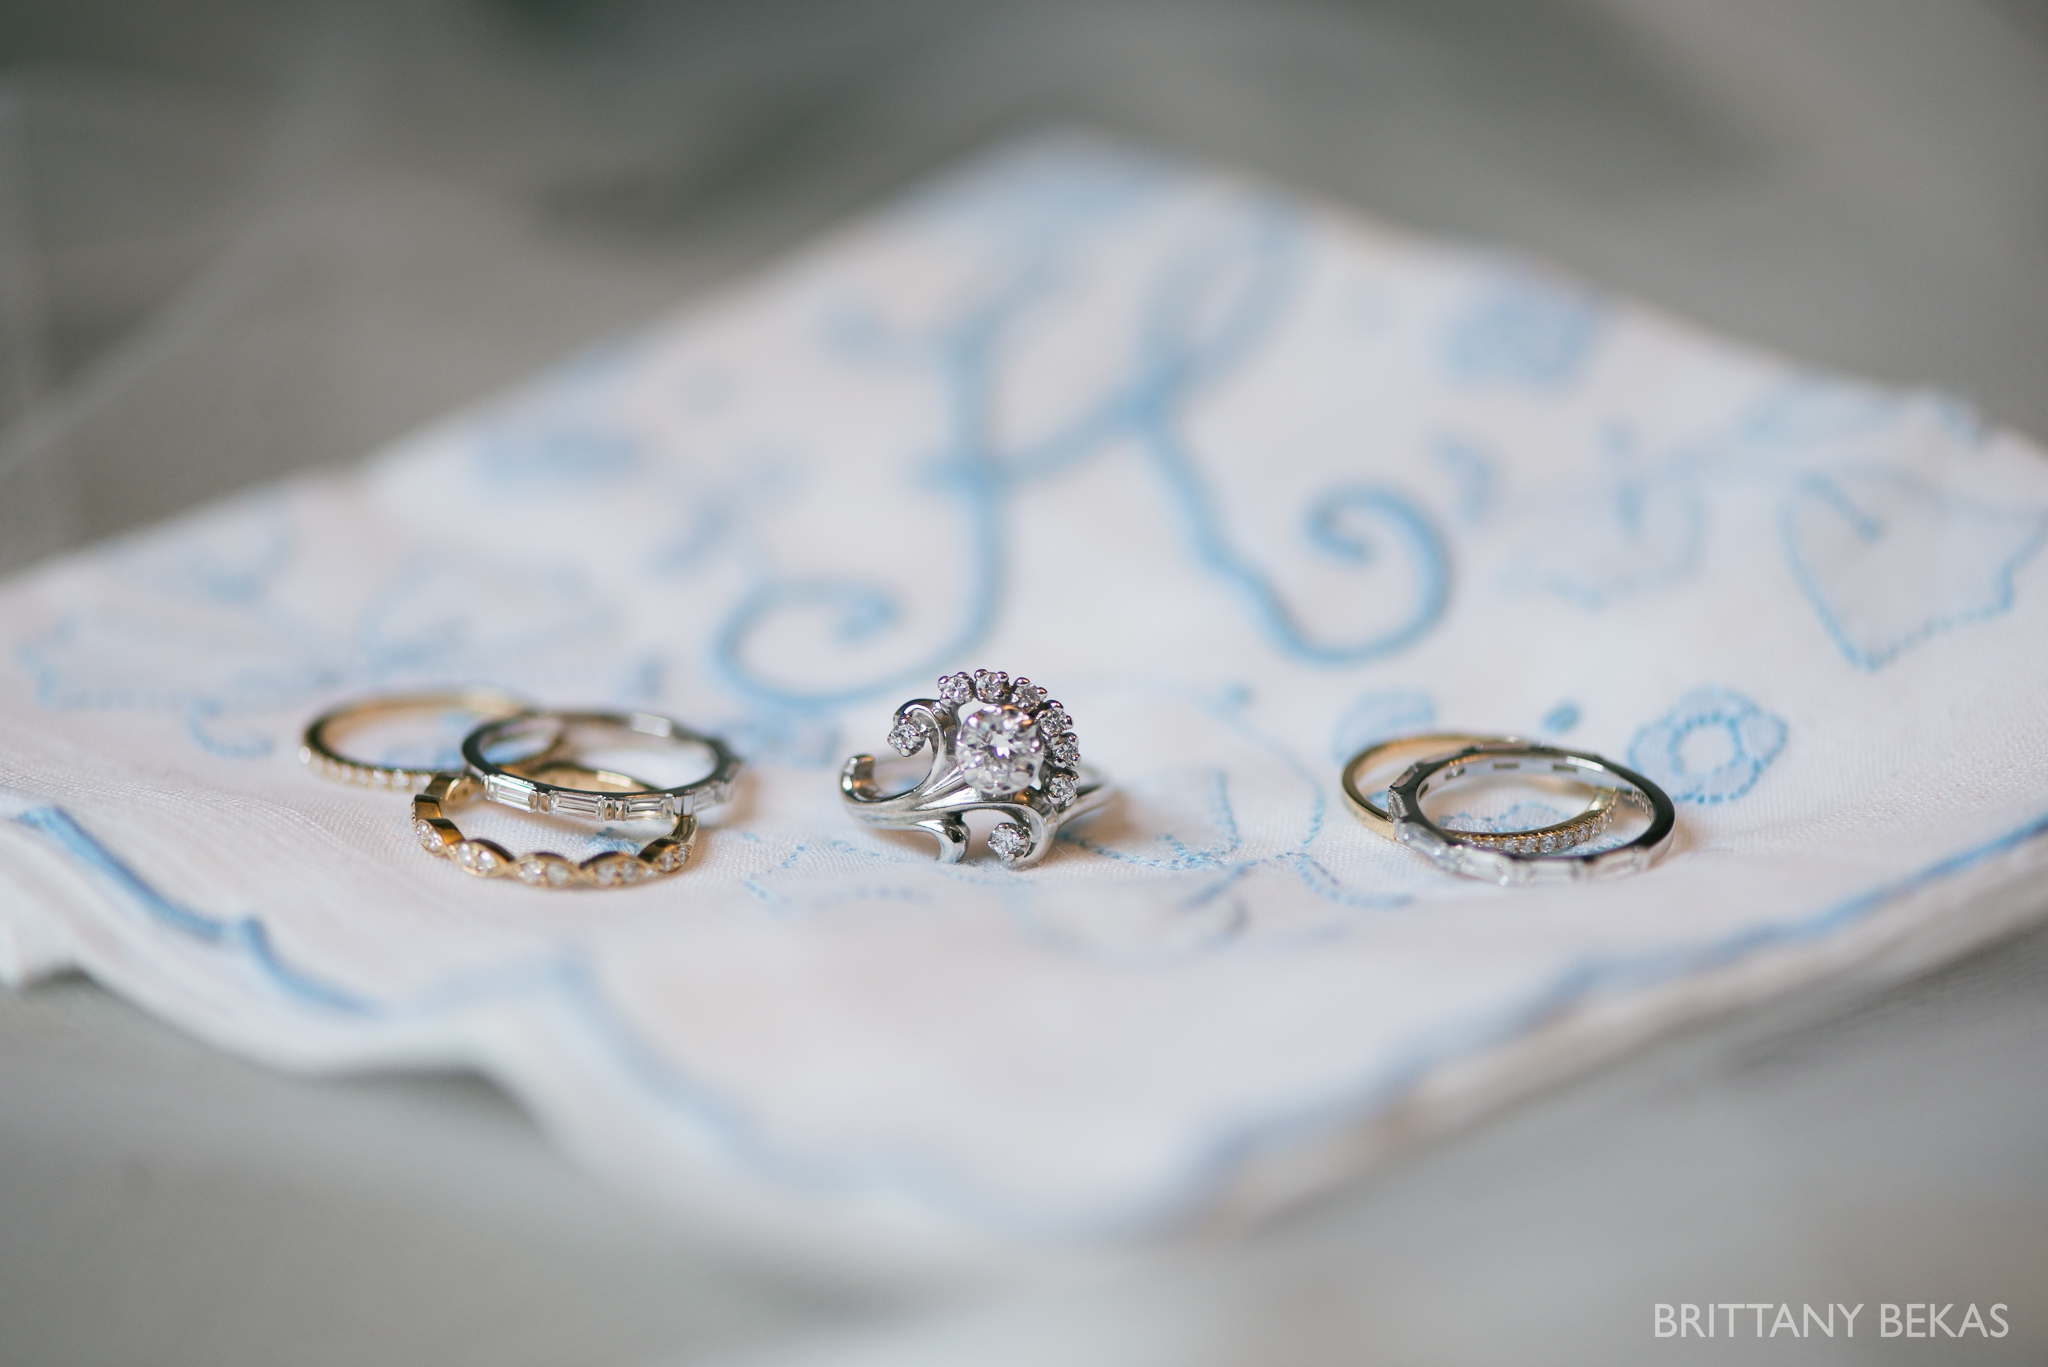 Chicago Wedding Hotel Allegro Wedding Photos - Brittany Bekas Photography_0006